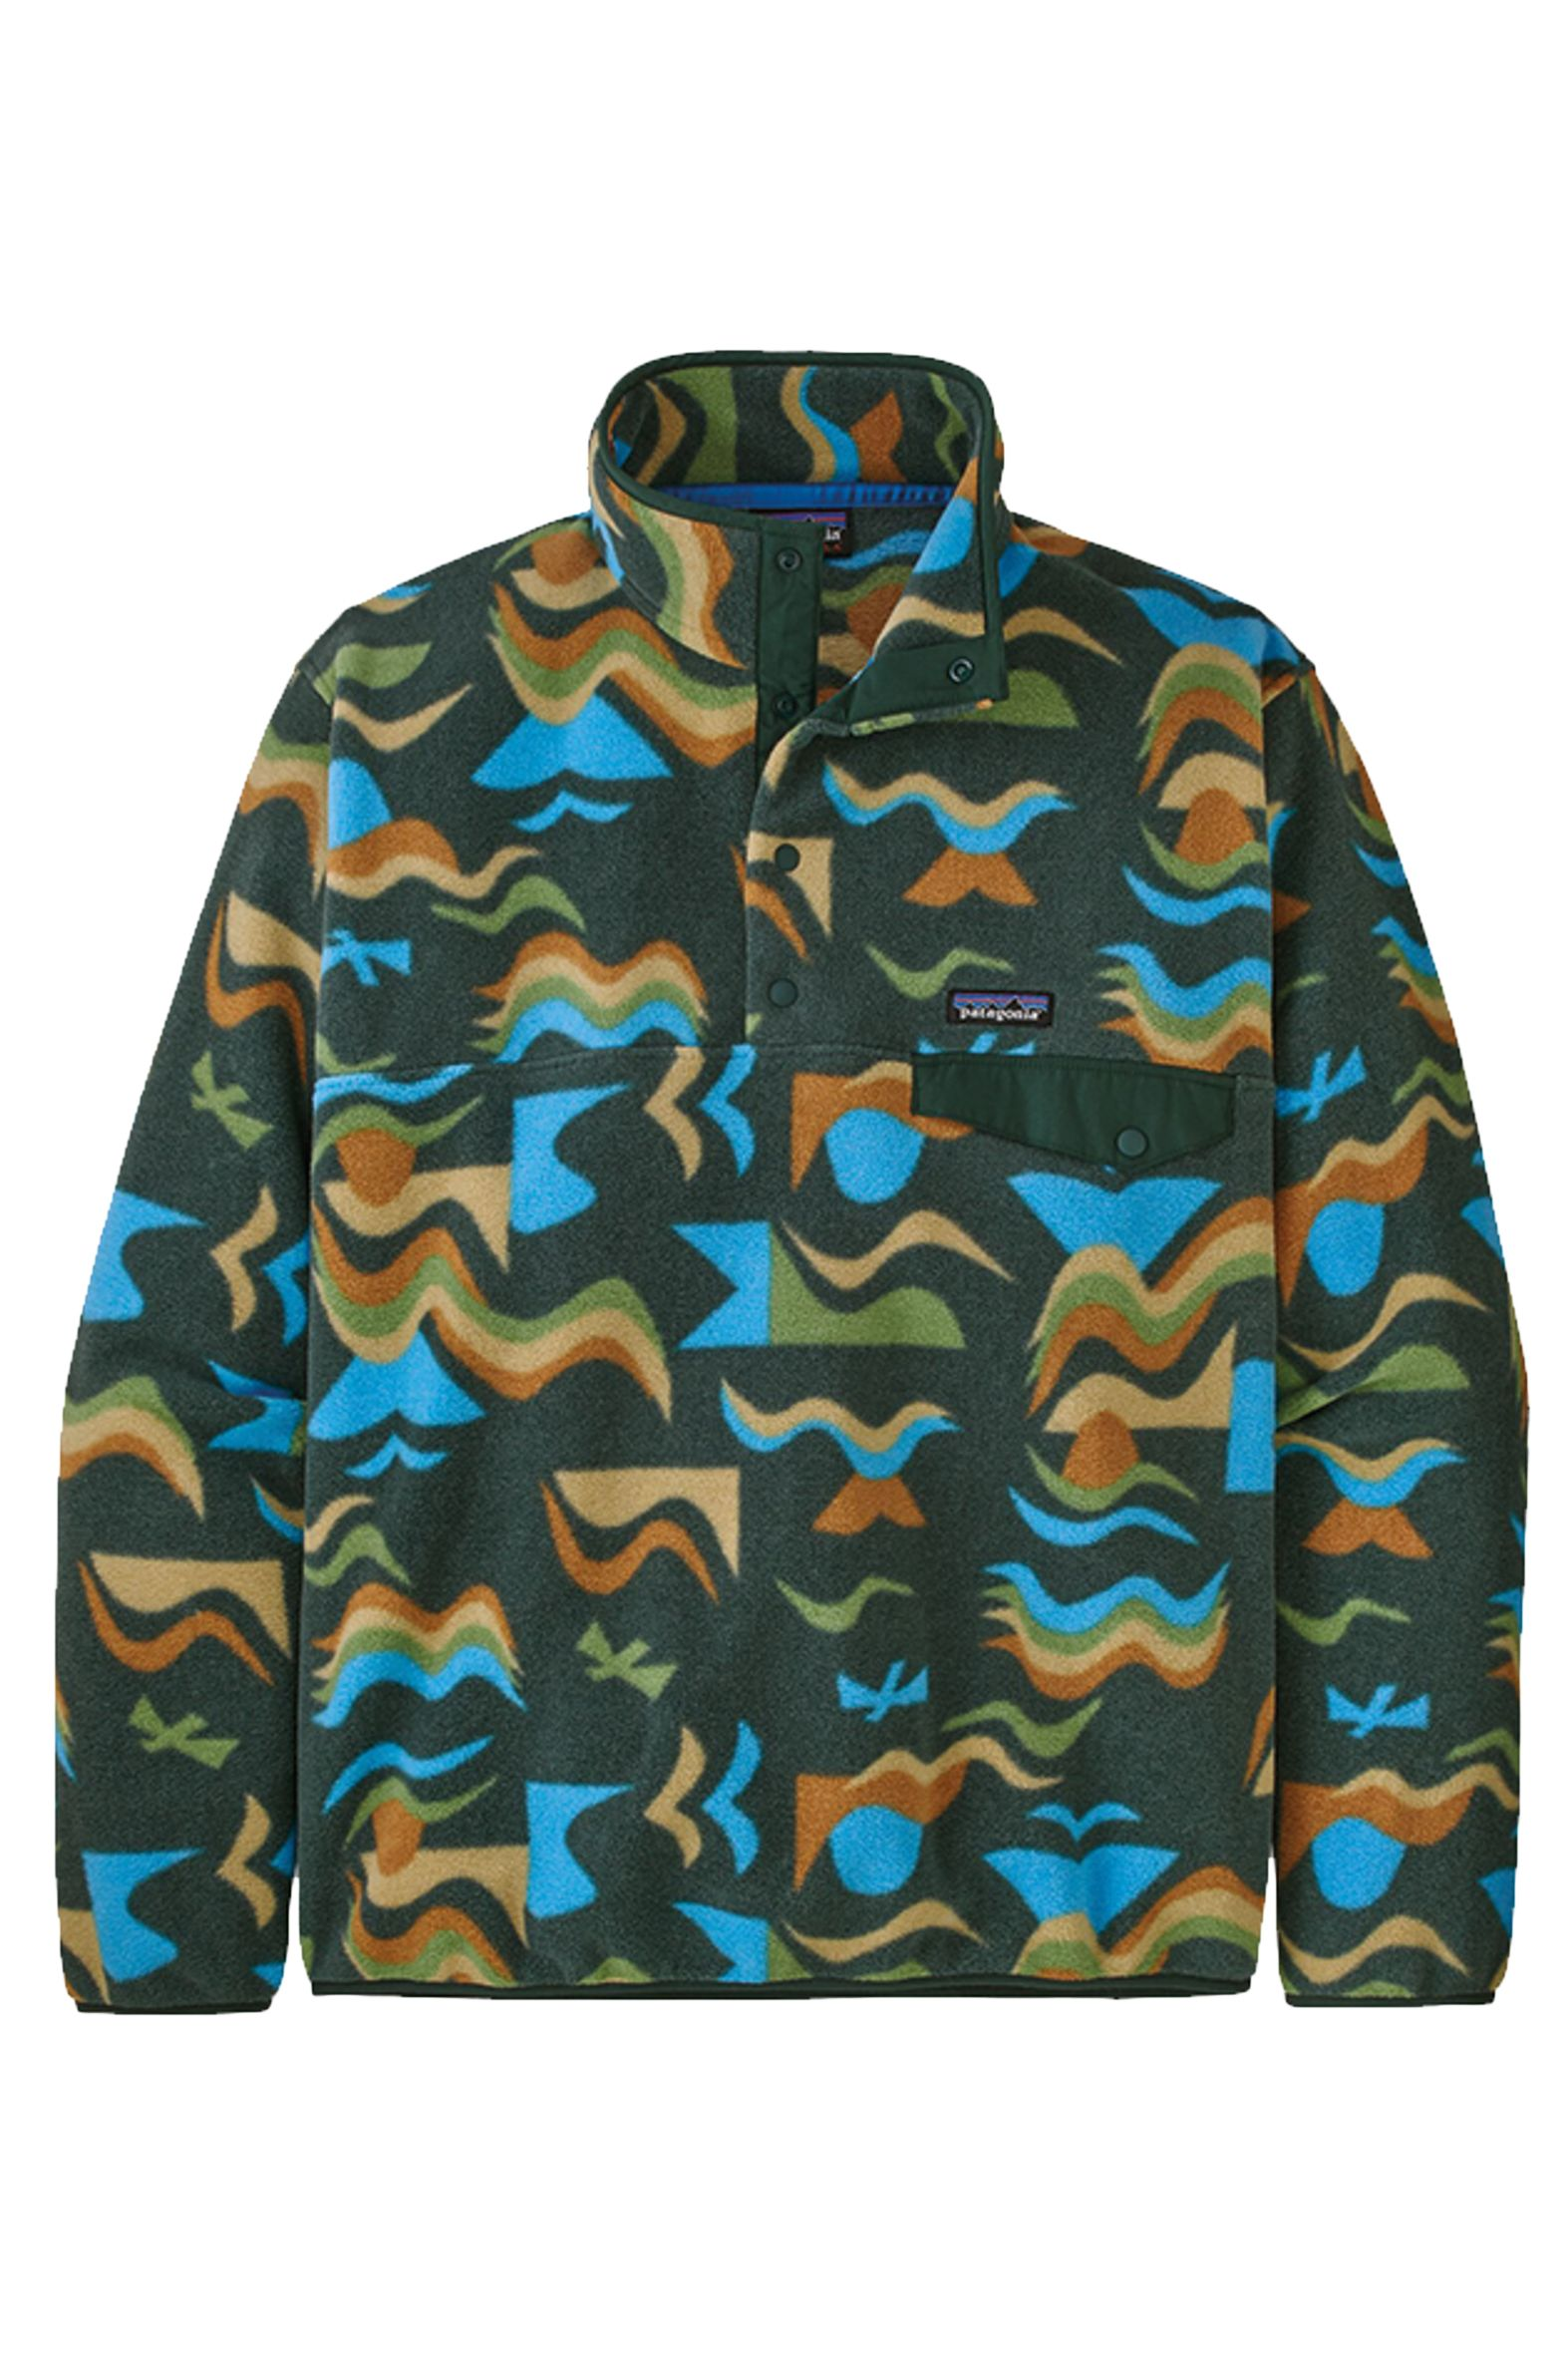 Patagonia Sweat Warmer M'S LW SYNCH SNAP-T P/O - EU FIT Arctic Collage: Northern Green